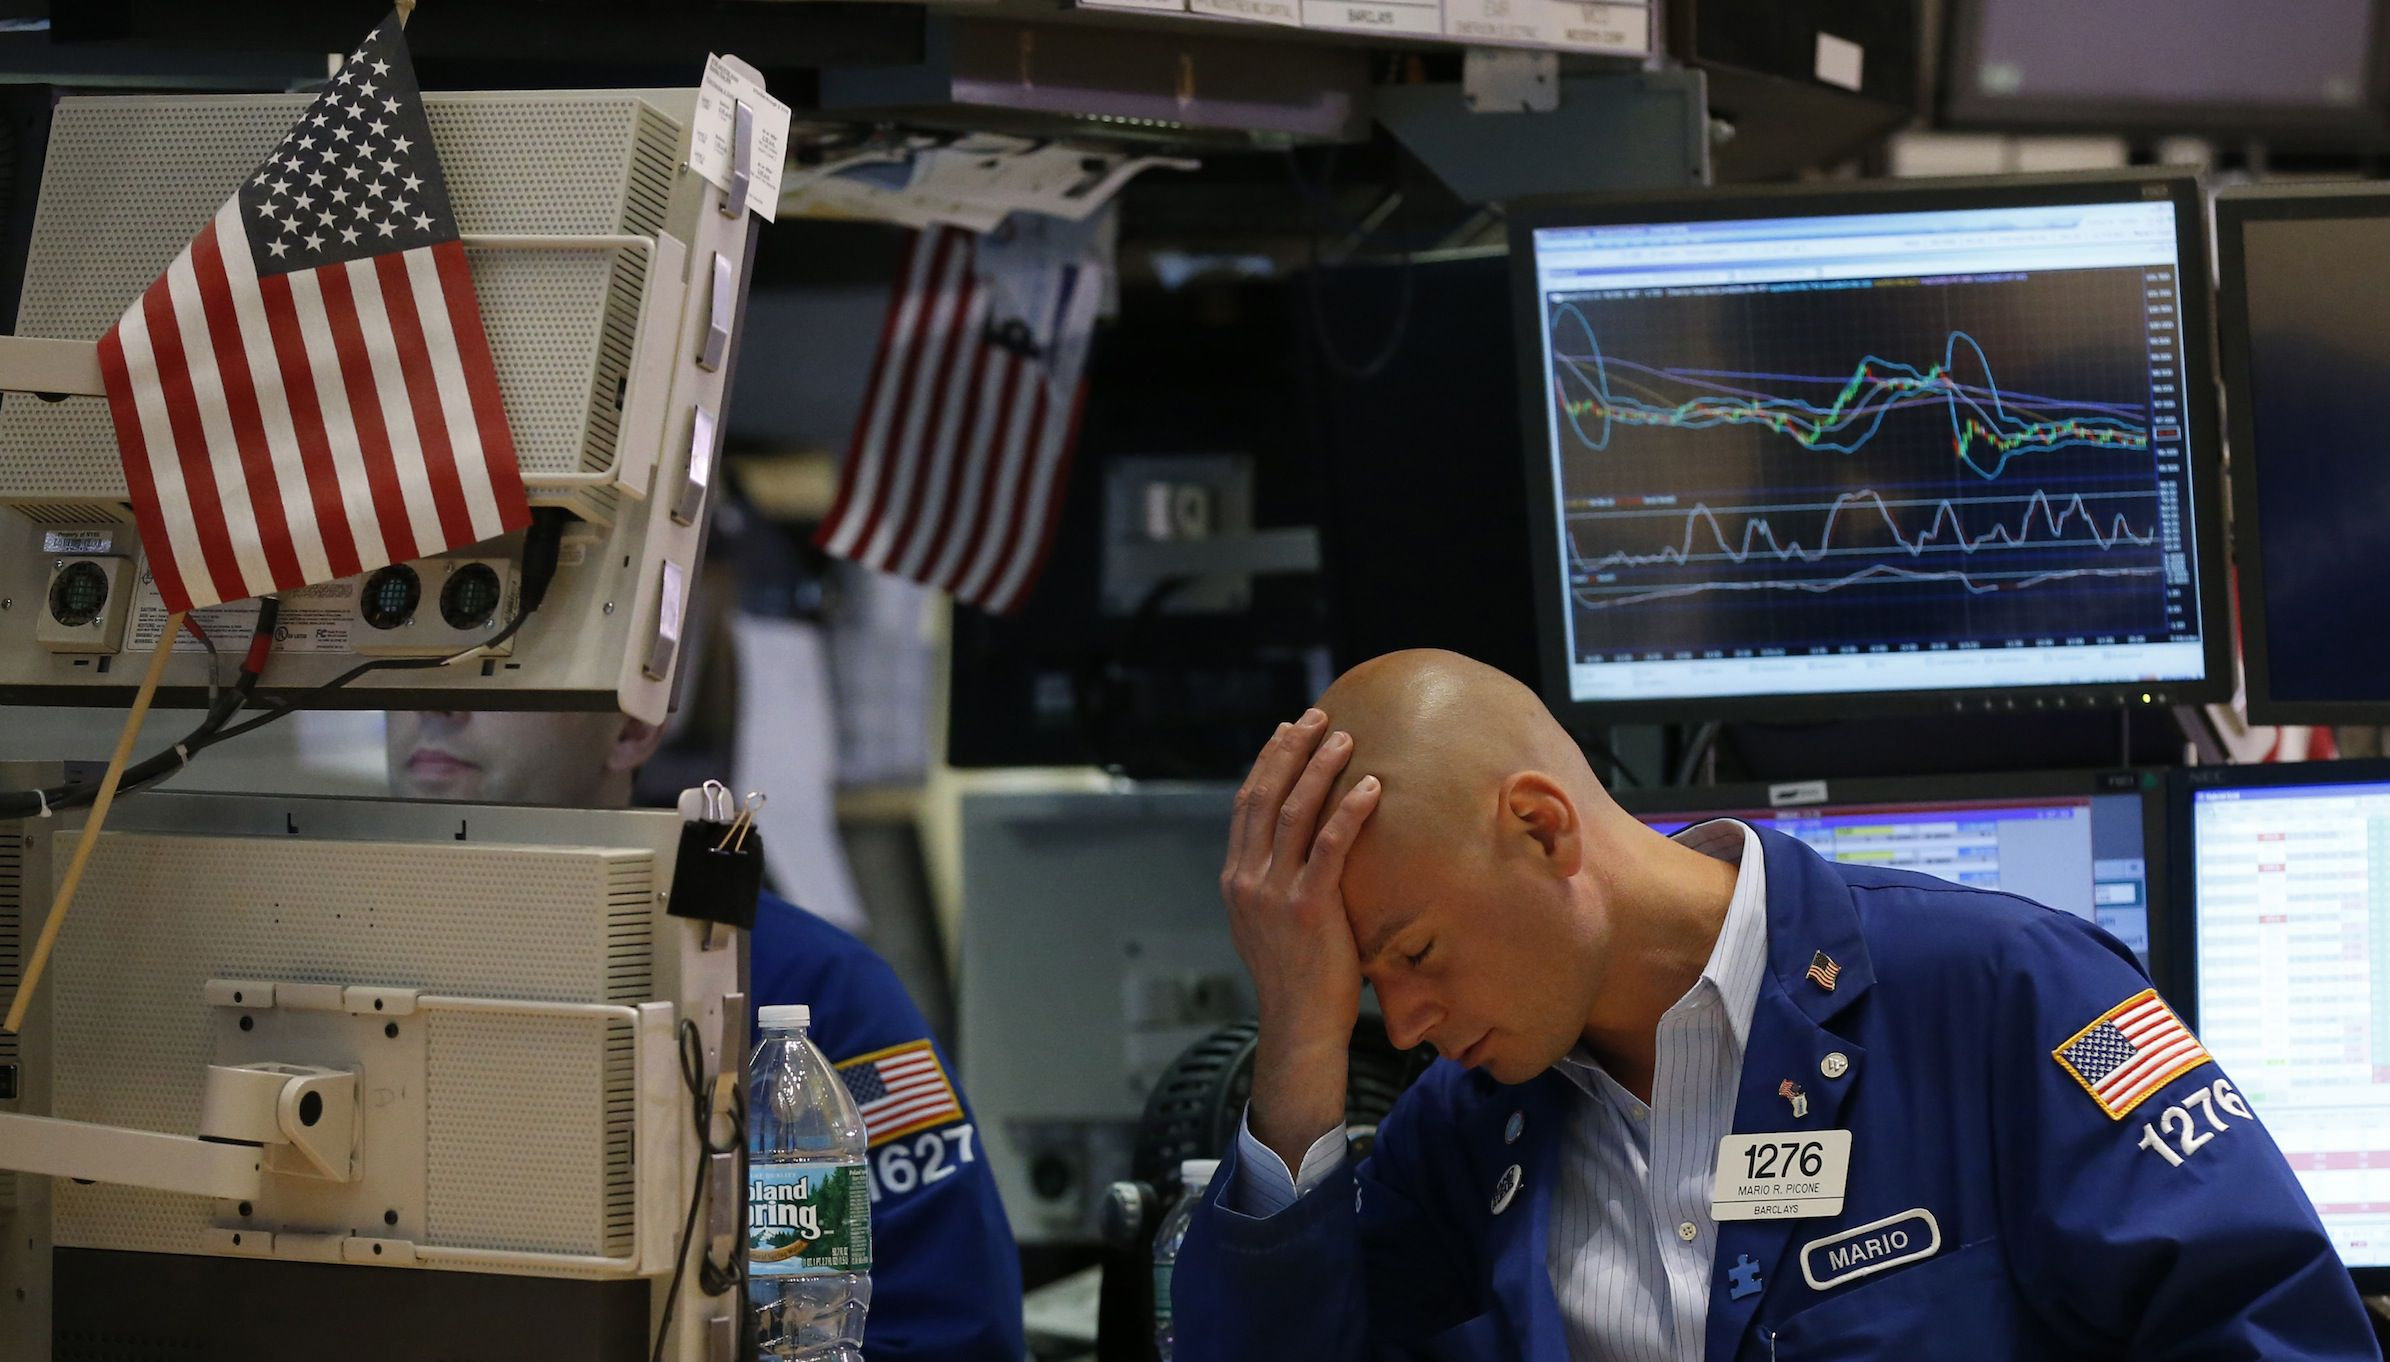 Trader Mario Picone works on the floor of the New York Stock Exchange June 1, 2012.  REUTERS/Brendan McDermid (UNITED STATES - Tags: BUSINESS TPX IMAGES OF THE DAY) - RTR32YRX